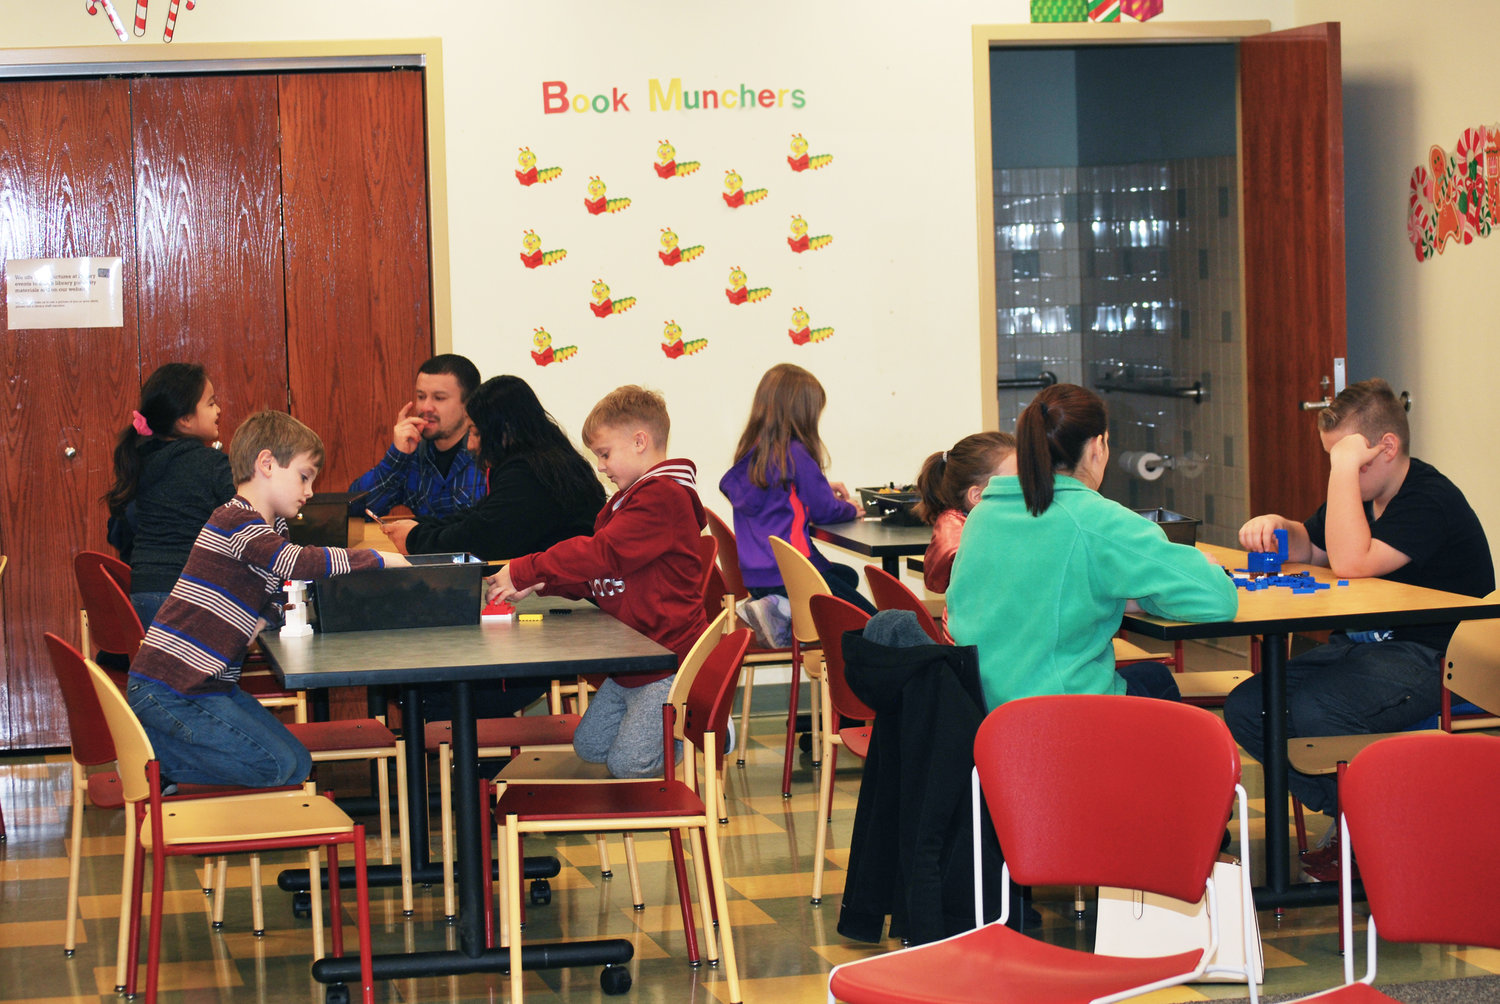 Lego Club getting together at the Public Library to create certain objects based on challenges given to them